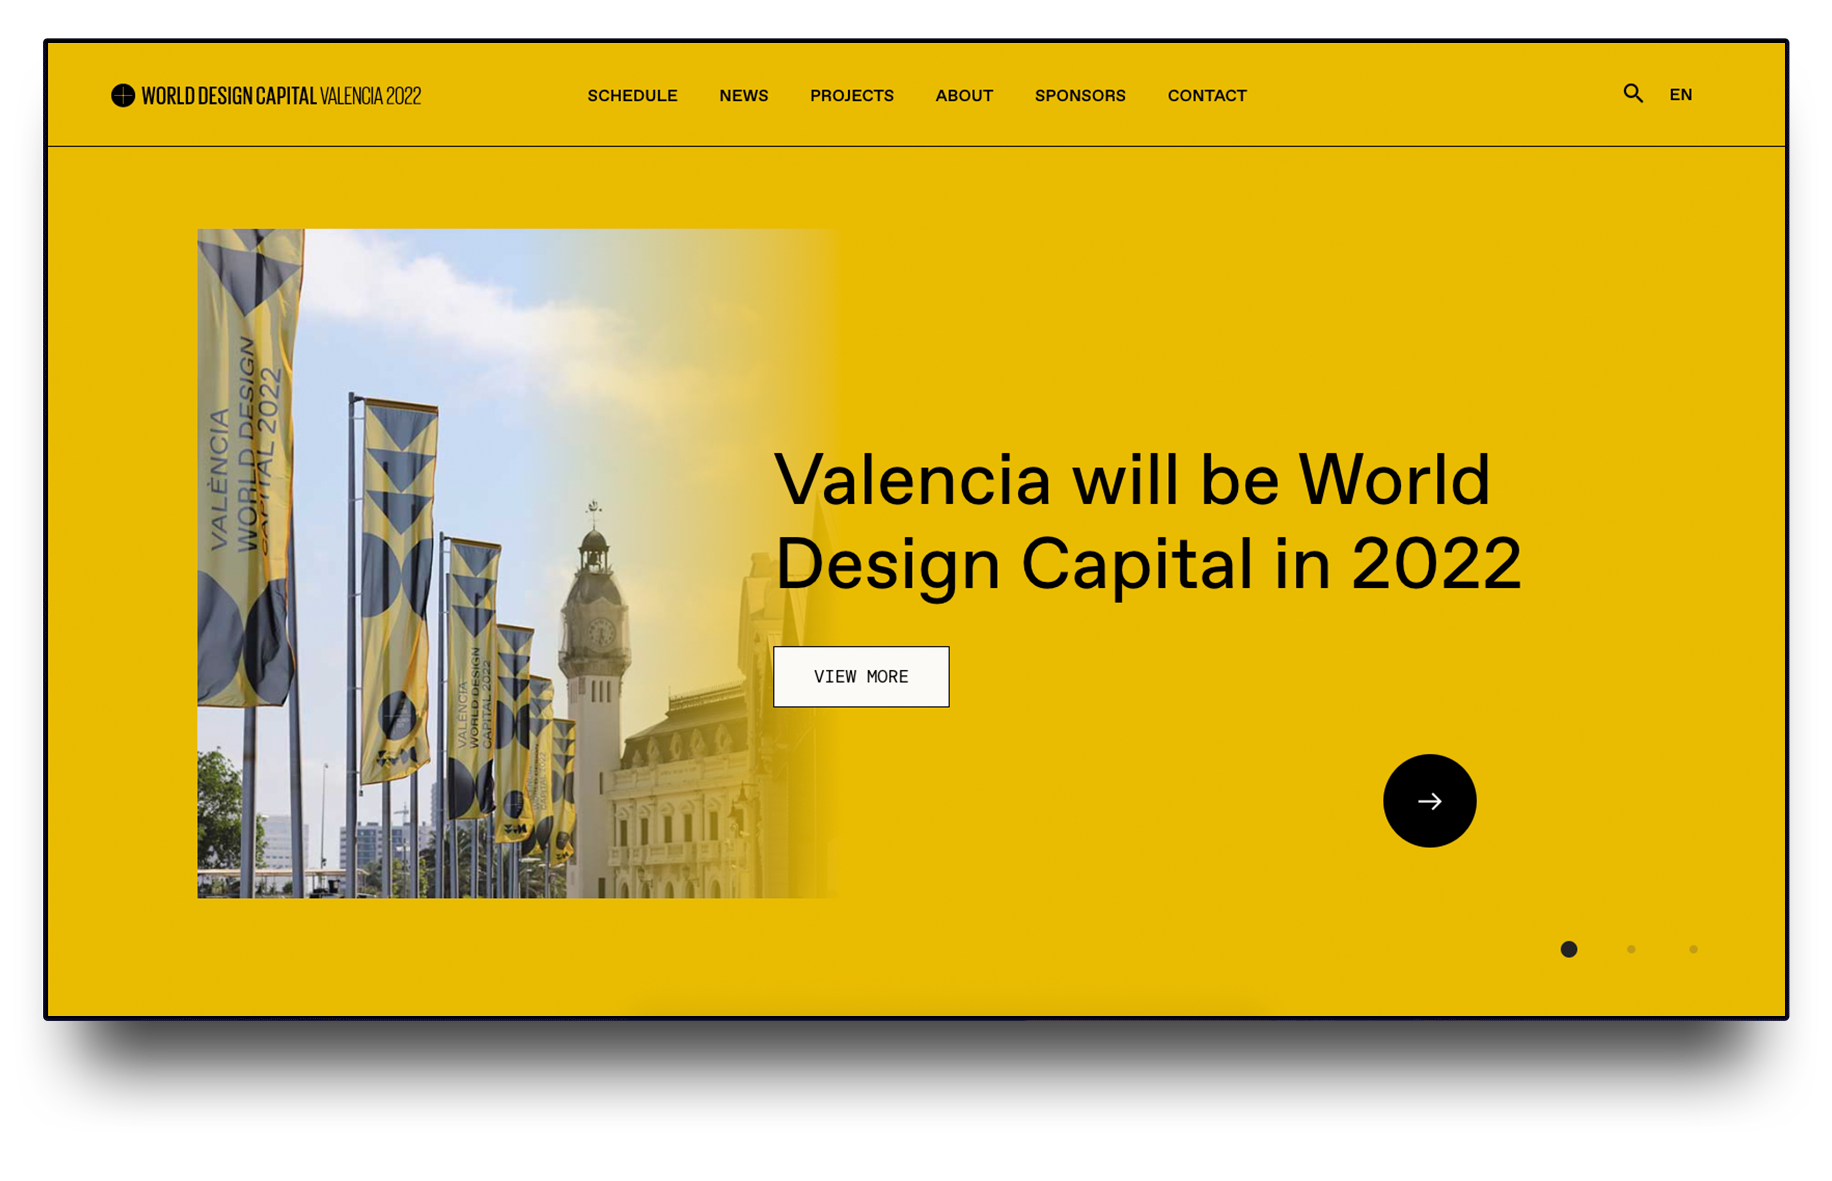 World Design Capital Valencia 2022